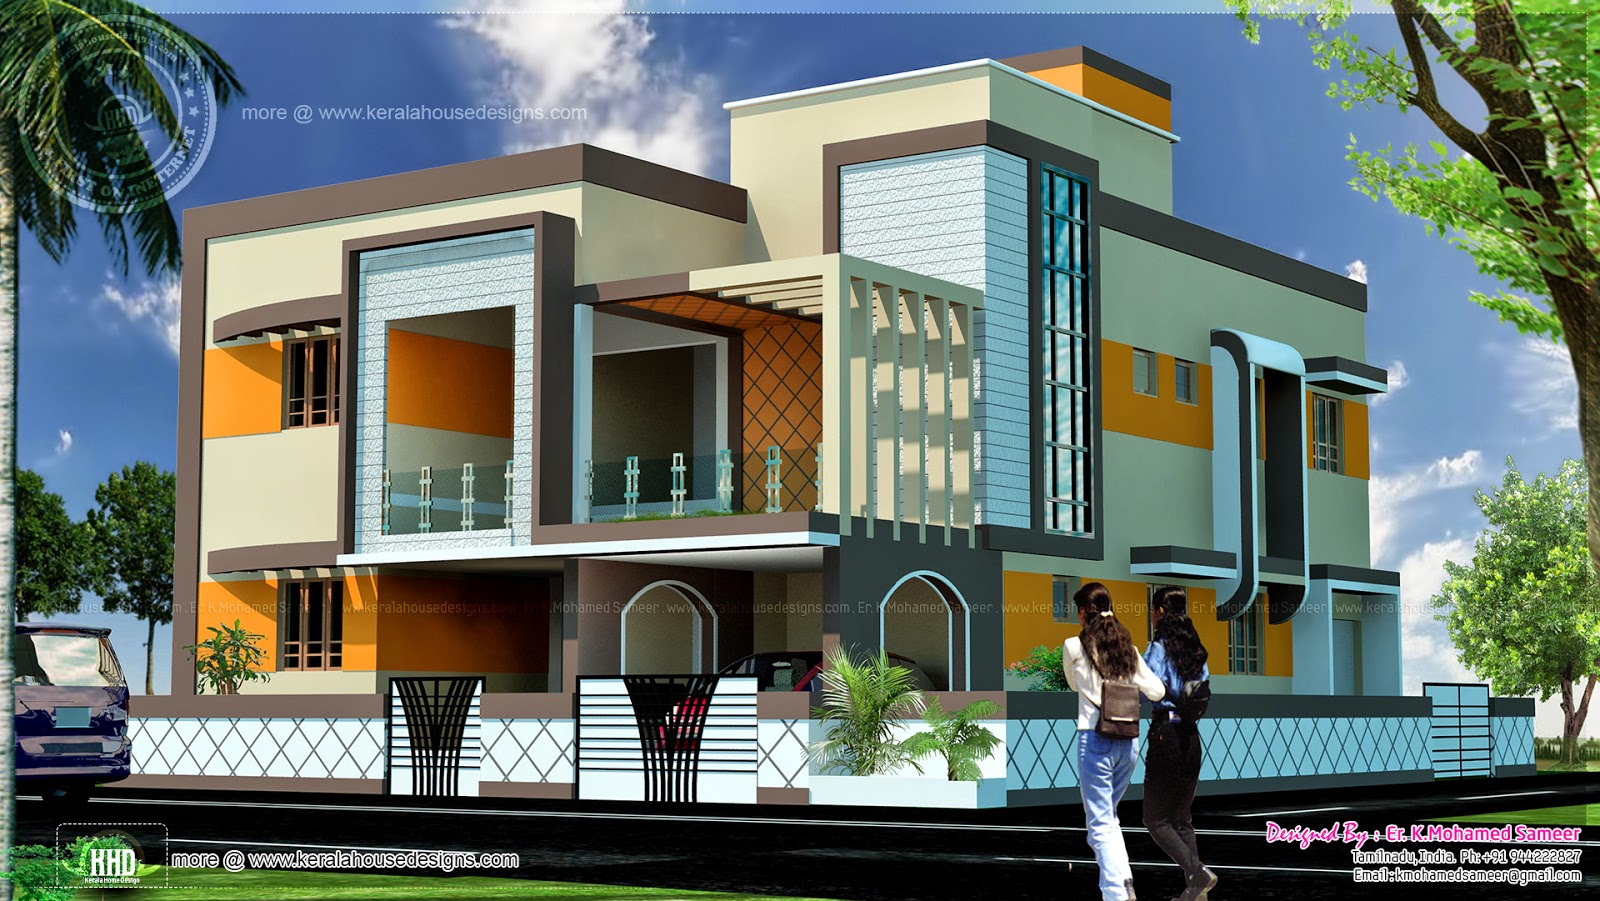 Home Portico Design In Tamilnadu | Flisol Home on small house living room designs, small house kitchen designs, small house window designs, small house entrance designs, small house deck designs, small house porch designs, small house roof designs, small house bathroom designs, small house entry designs, small house plans for home on slope, small house garage designs, small house architecture designs,